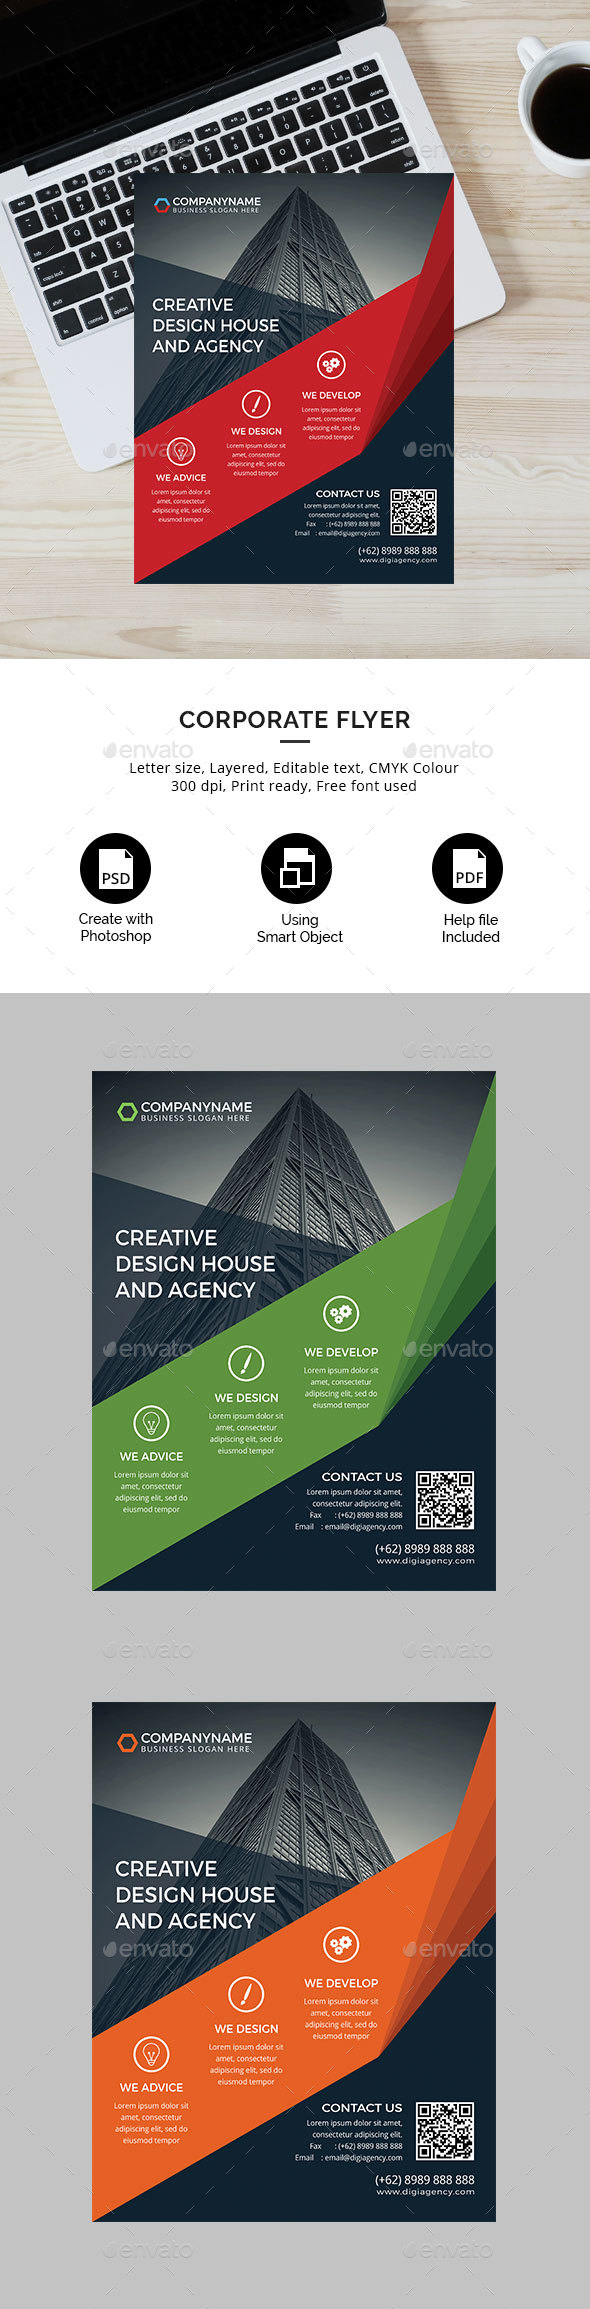 Digital Agency Flyer - Corporate Flyers